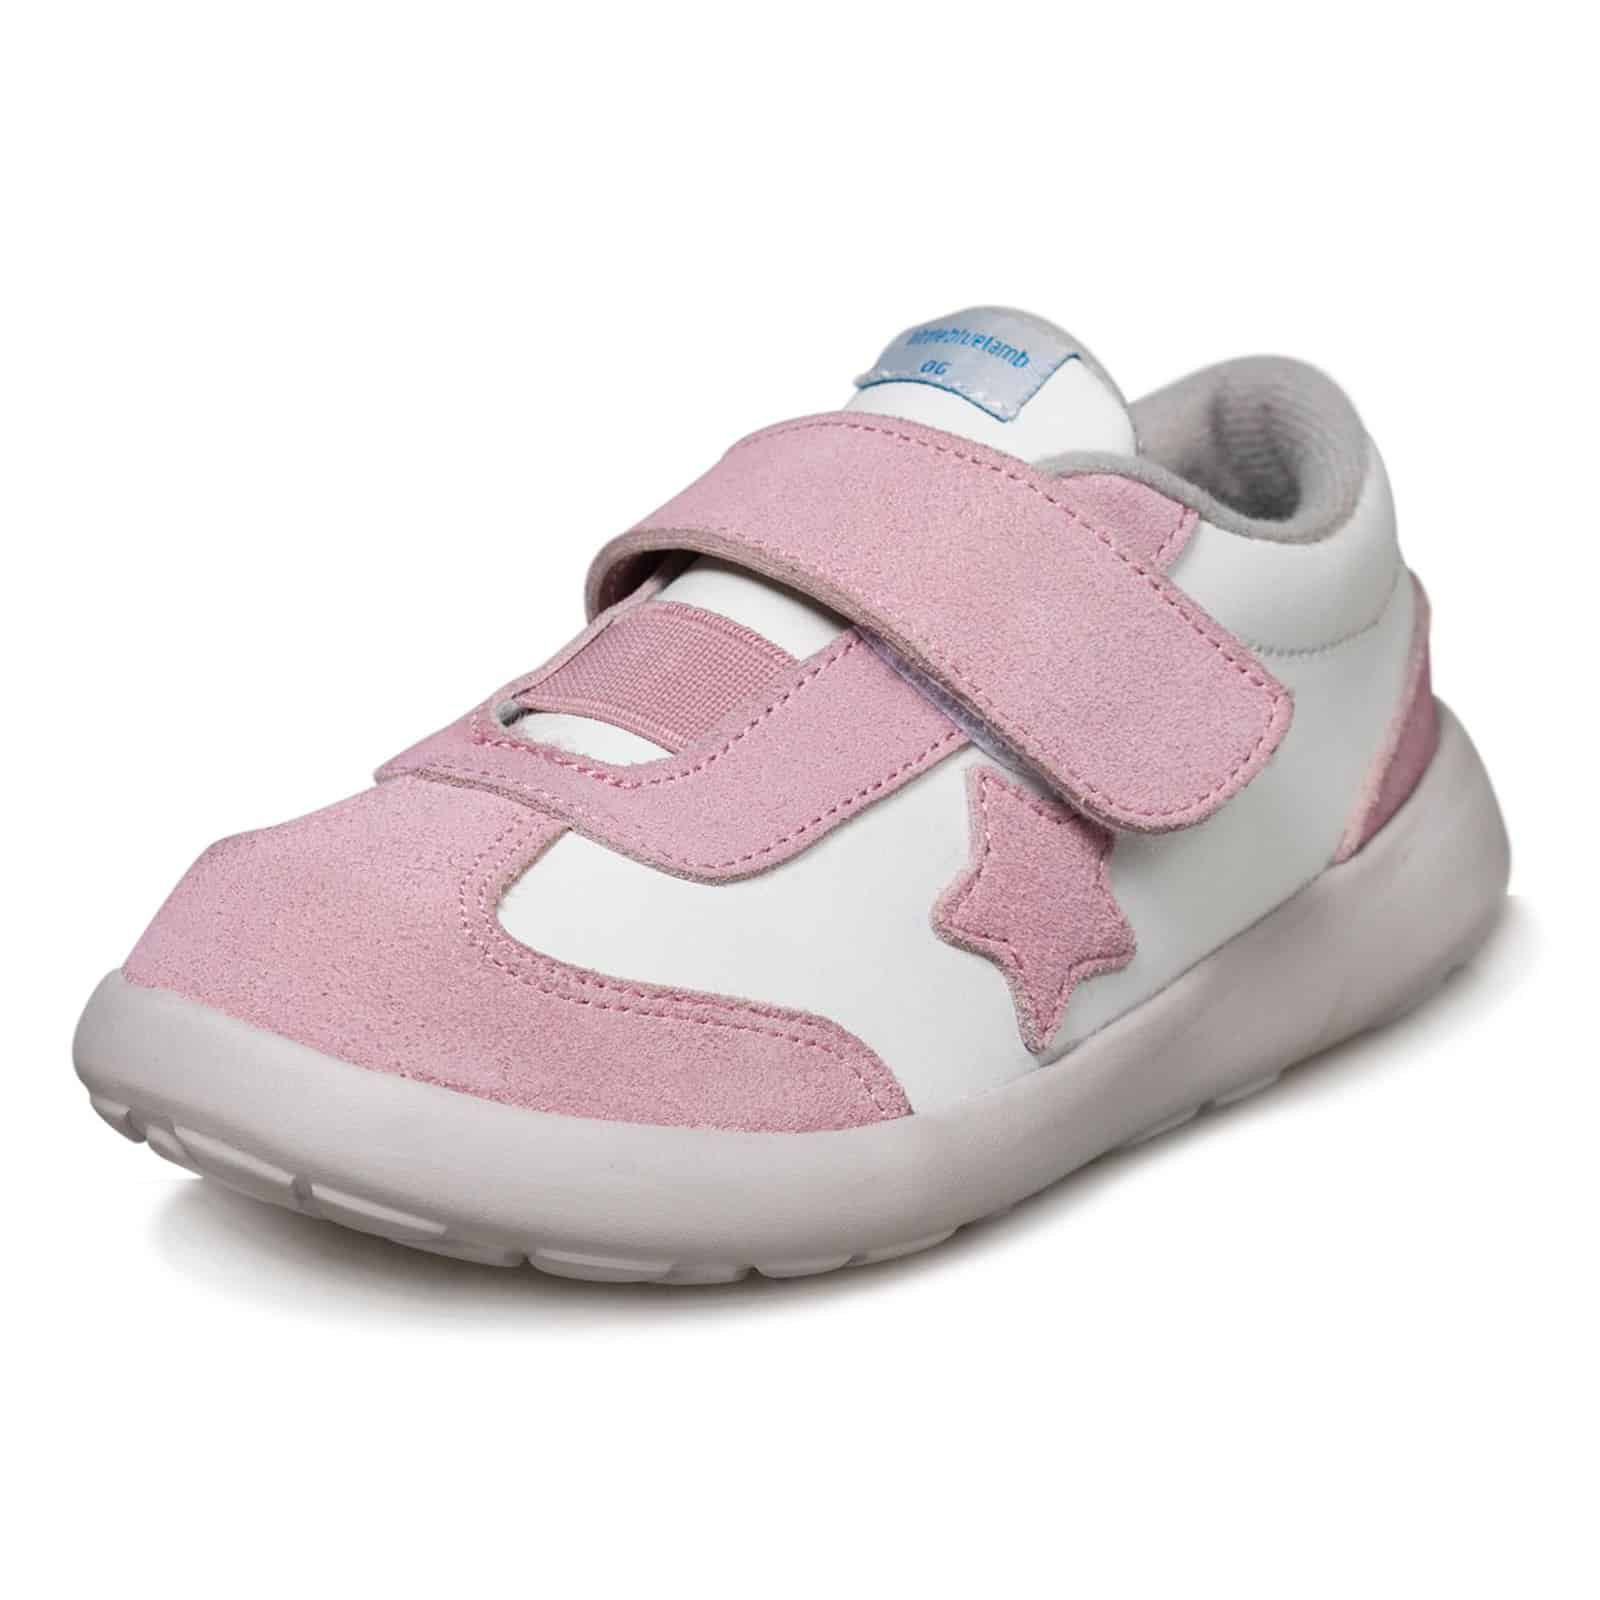 the gallery for gt pink and blue baby shoes